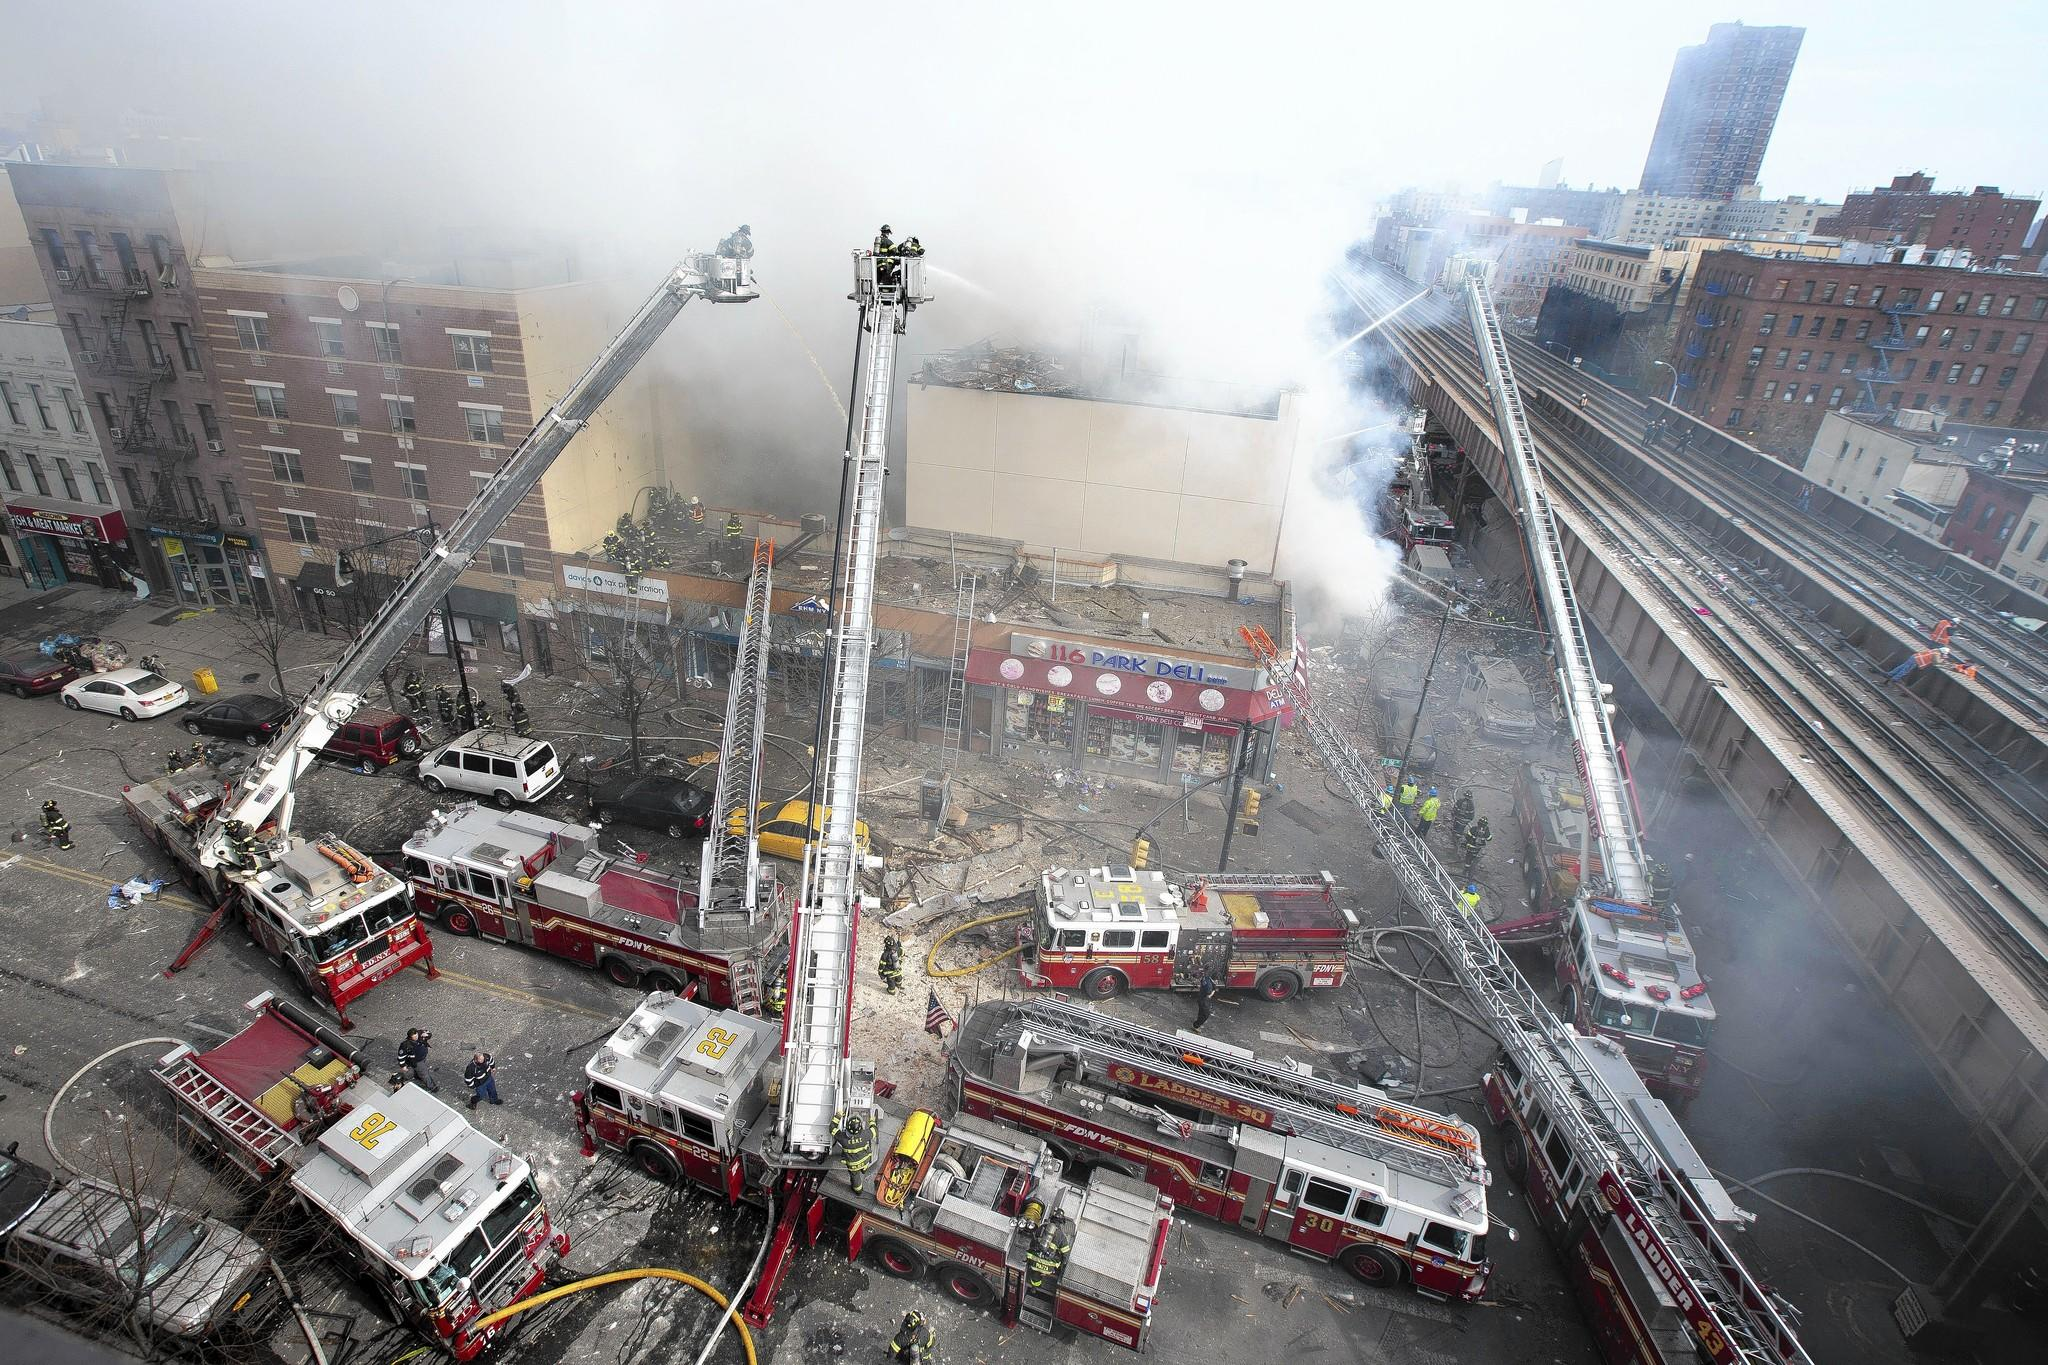 Firefighters battle a blaze in a collapsed building in East Harlem. A resident of one of the two destroyed buildings said neighbors had reported an overpowering smell of gas to fire officials a day earlier.